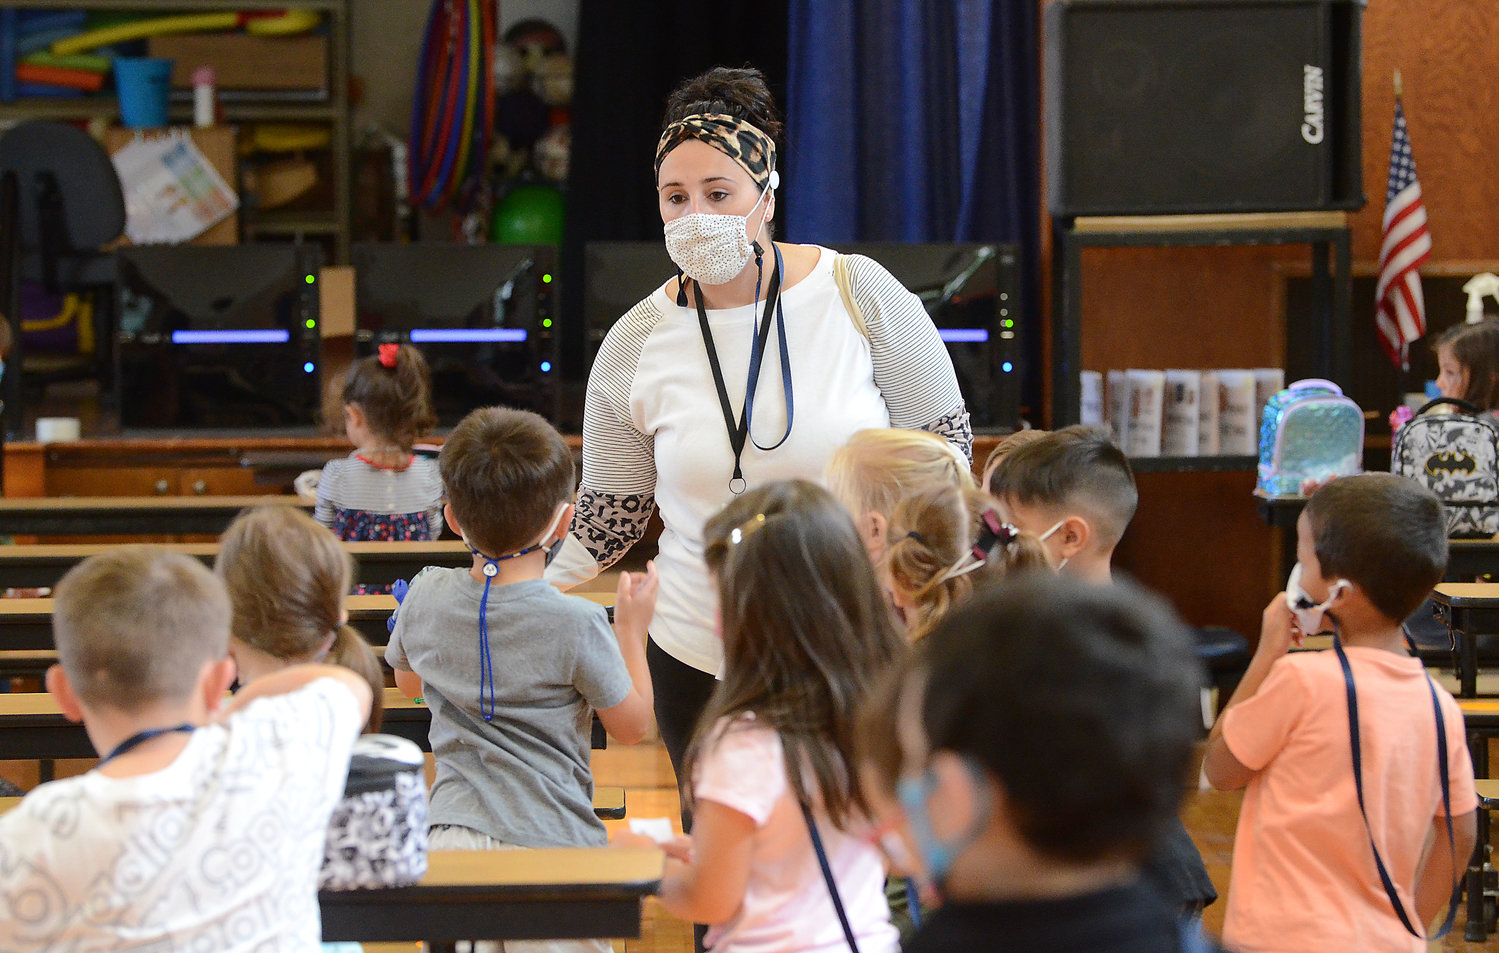 A teacher works with students at the Macomber School during the first week of school in September.